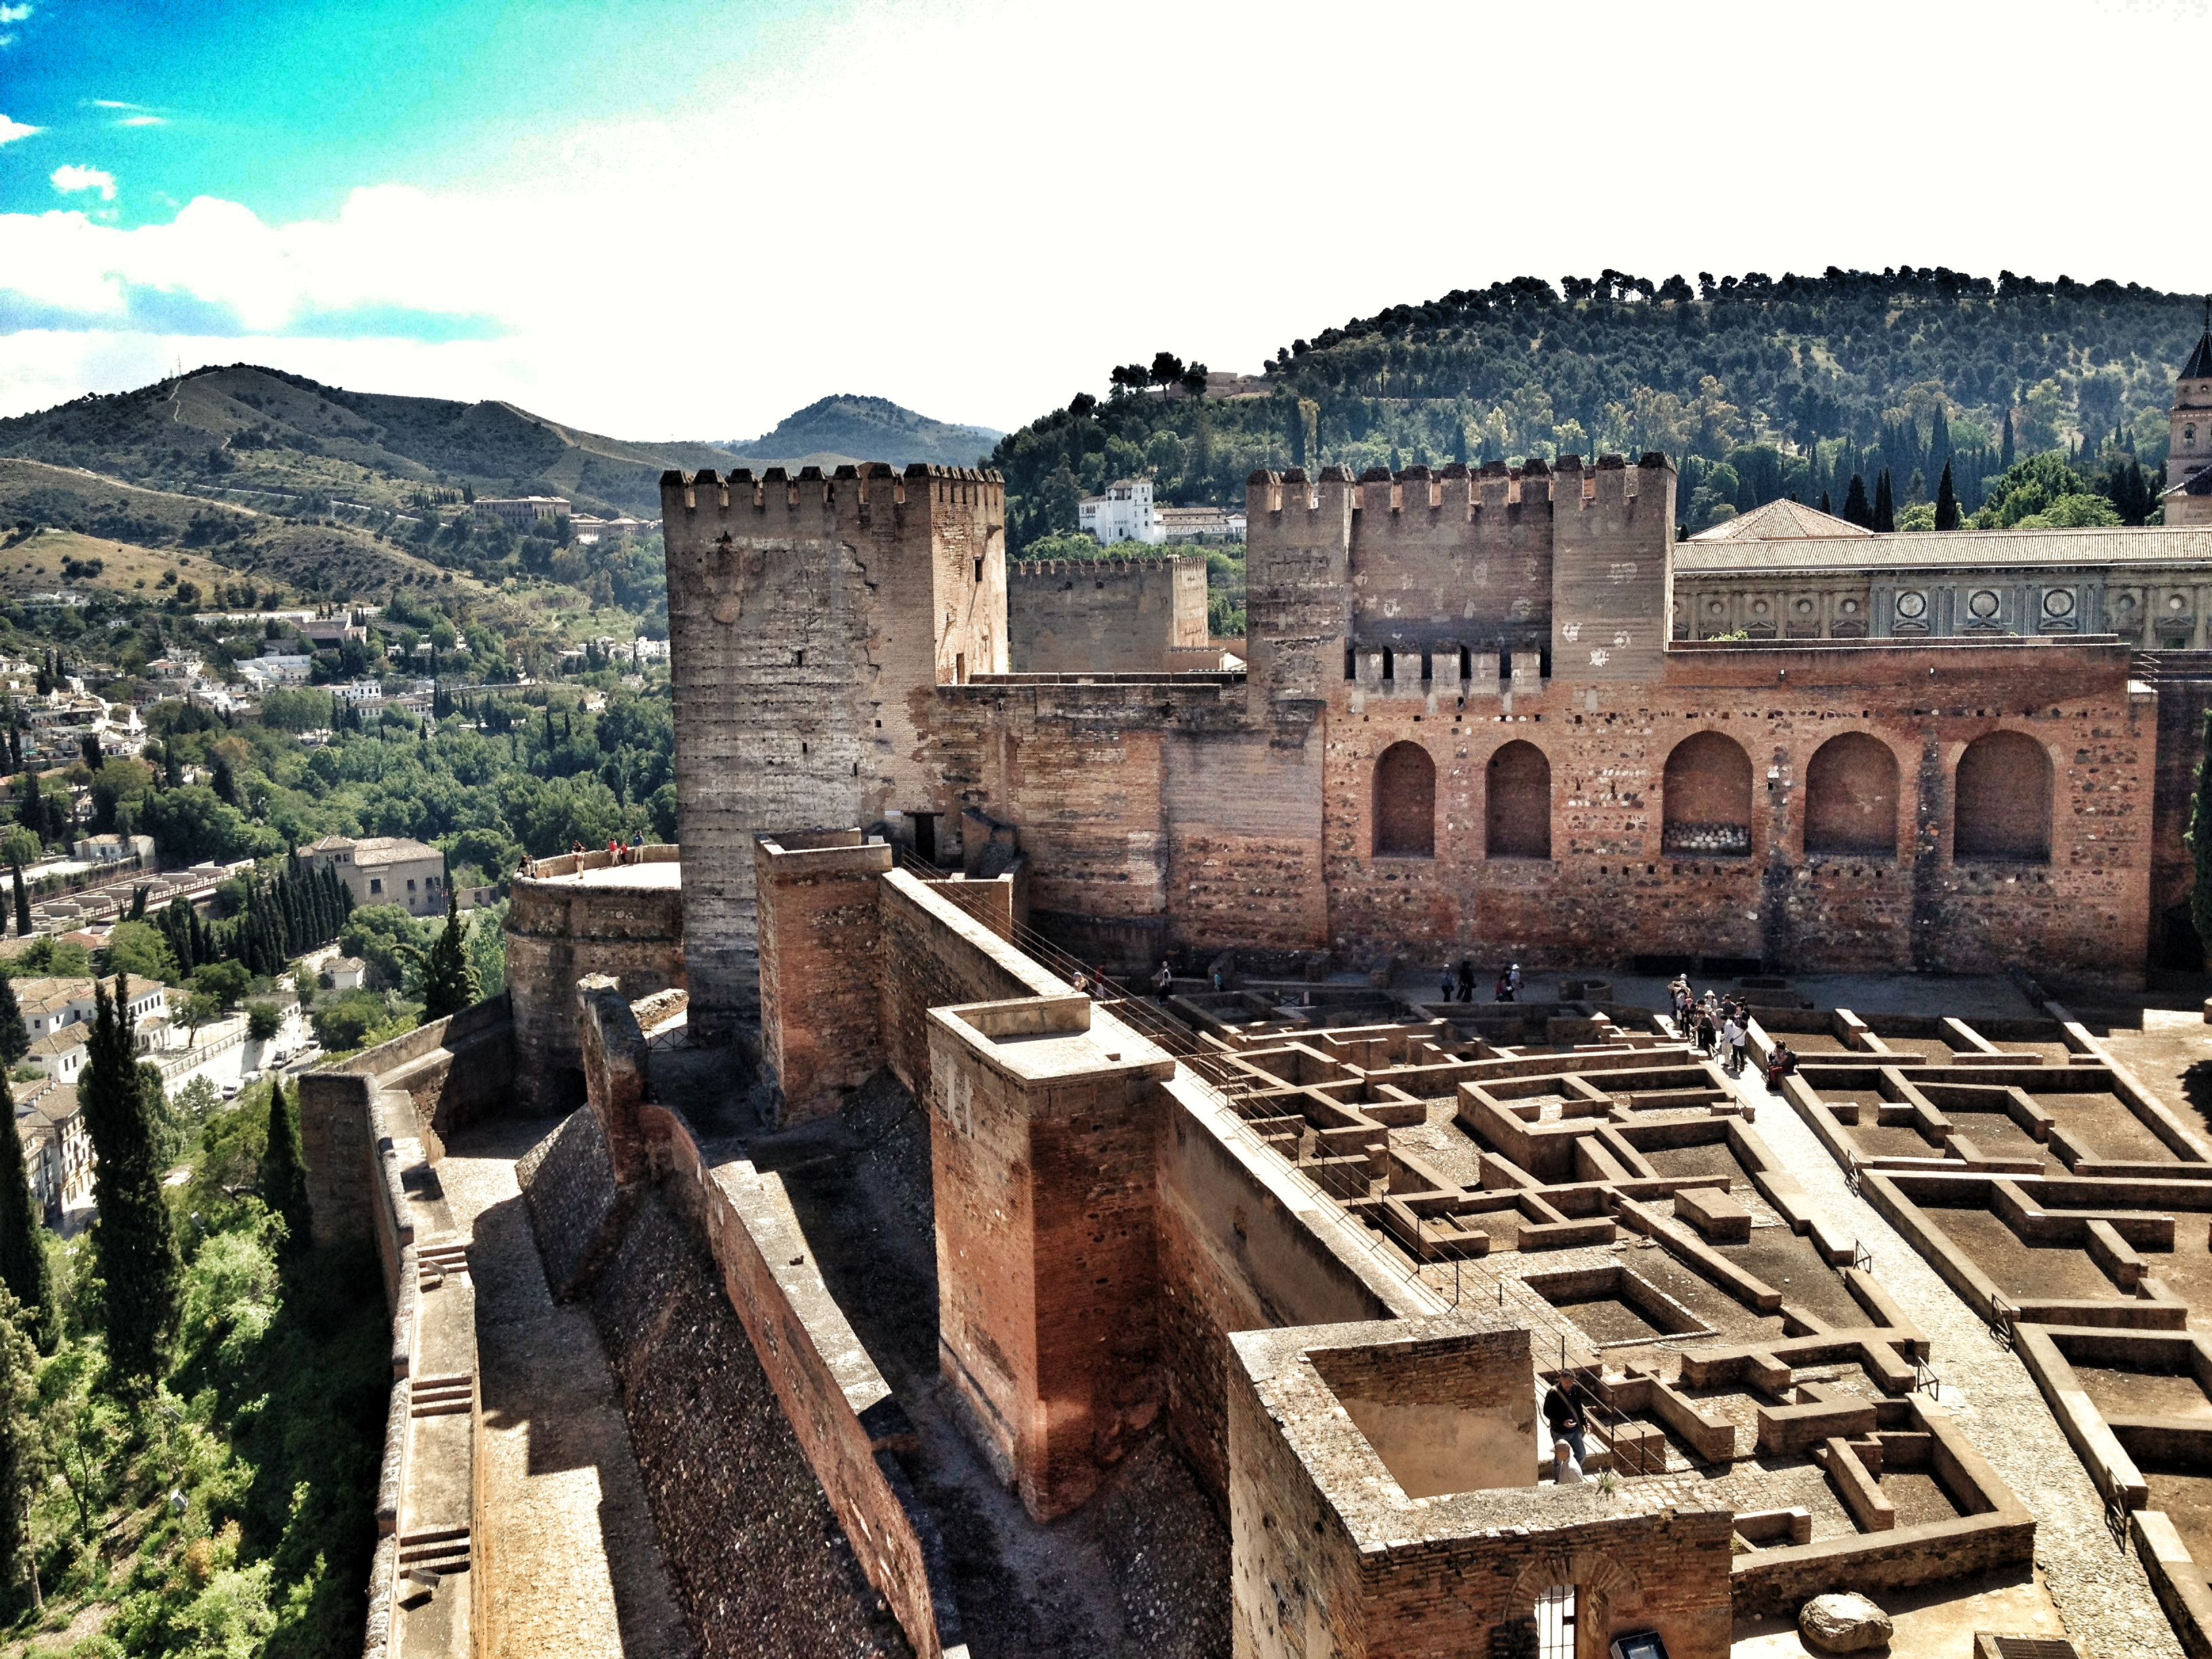 Abracadabra, It's a Magical Time in the Alhambra (Part 2)